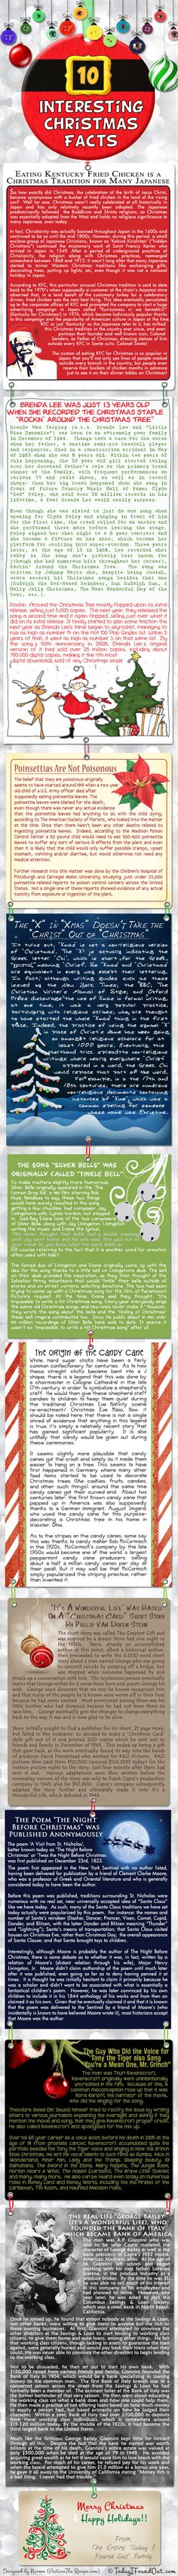 Discover new TIPS! Published by: Today I Found Out. Original source: here TIPS FOR: christmas, holidays and celebrations Related posts Halloween Recipes for Parties: a Perfectly Wiked Halloween Fascinating Things You Didn't Know about Christmas Tree Tradition 41 Smart Christmas Gift Tips to Save You Time and Money